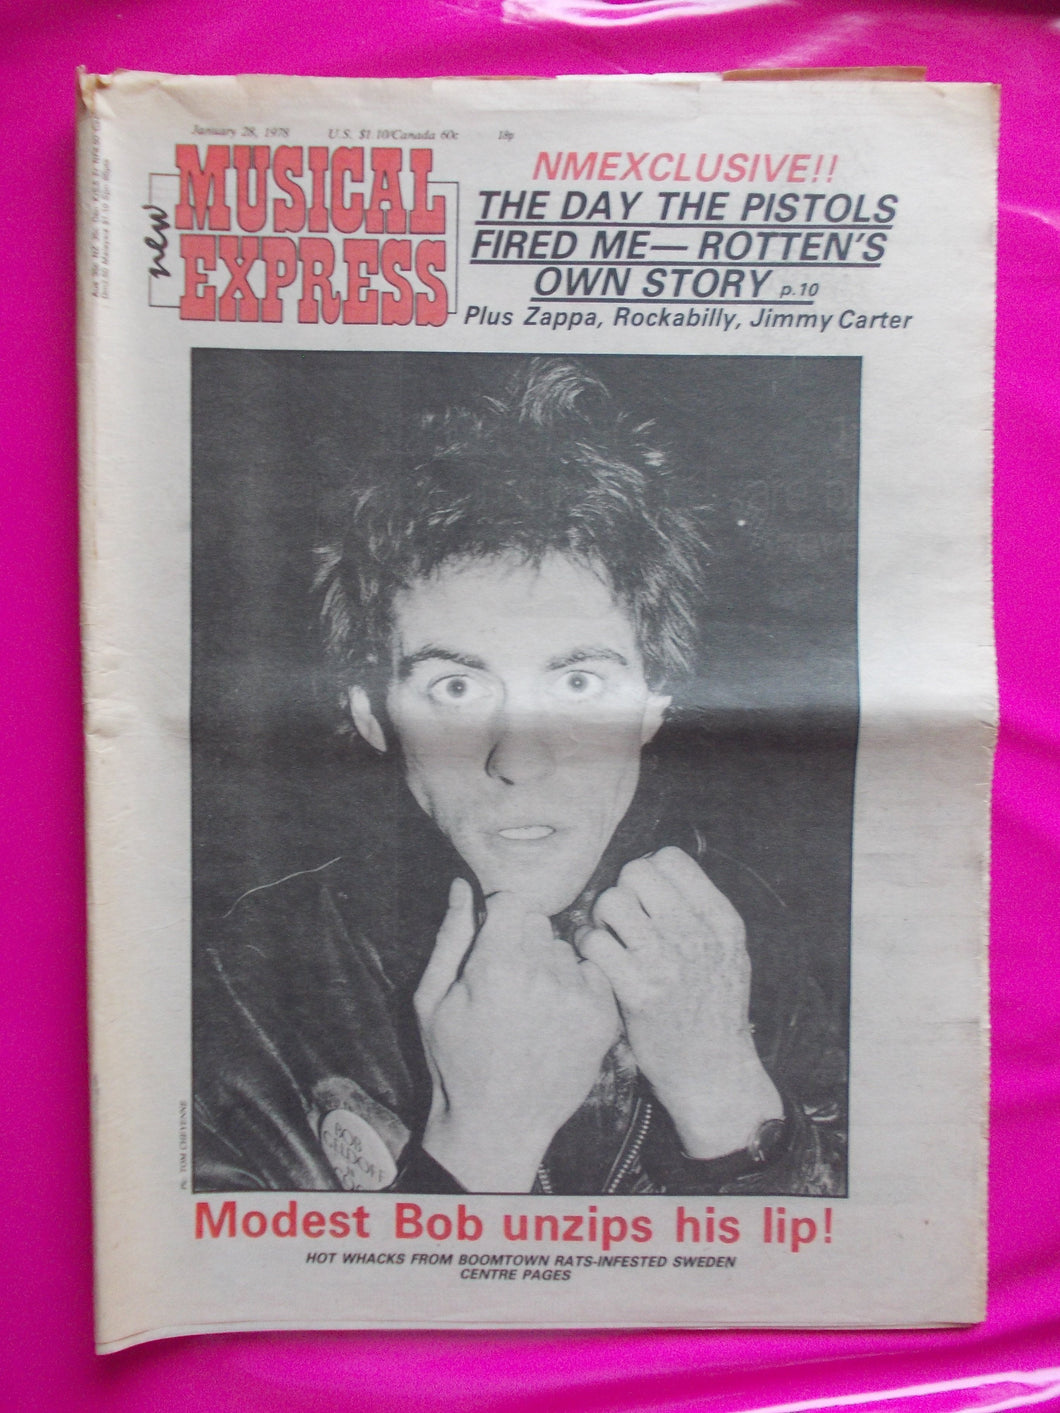 New Musical Express 28th January 1978. Includes story on Pistols split at Winterland and other punk related articles.